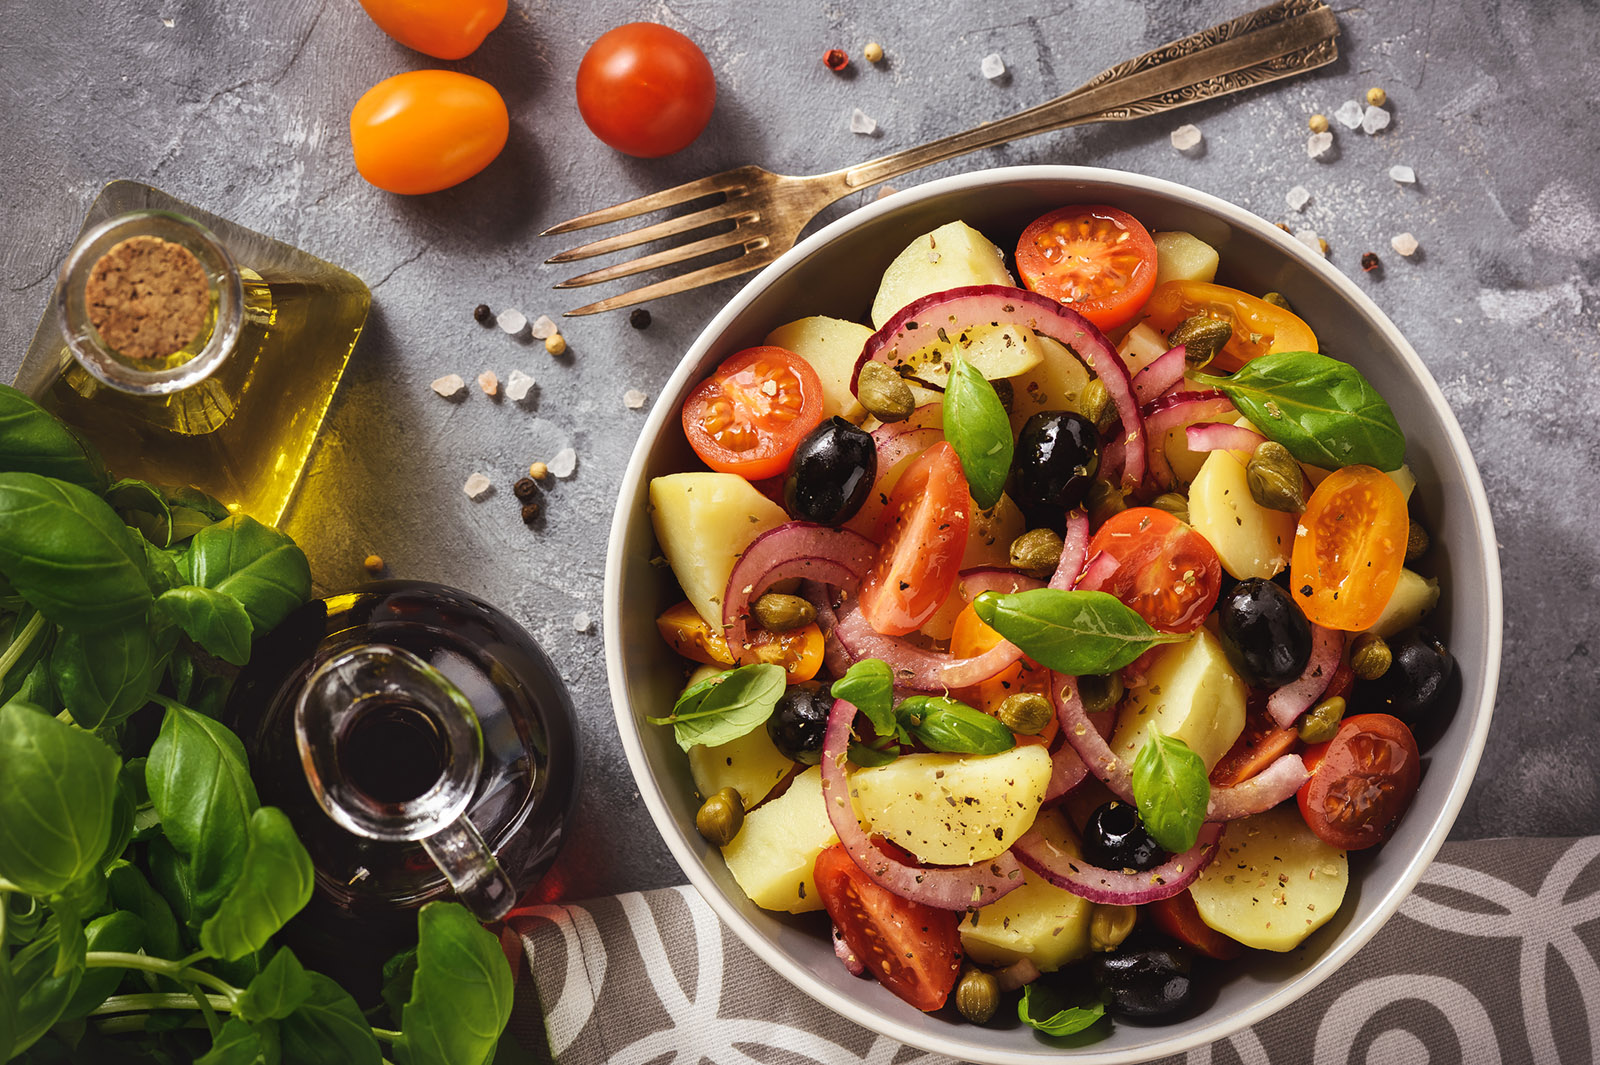 recipe and lots of tips to make this salad ready